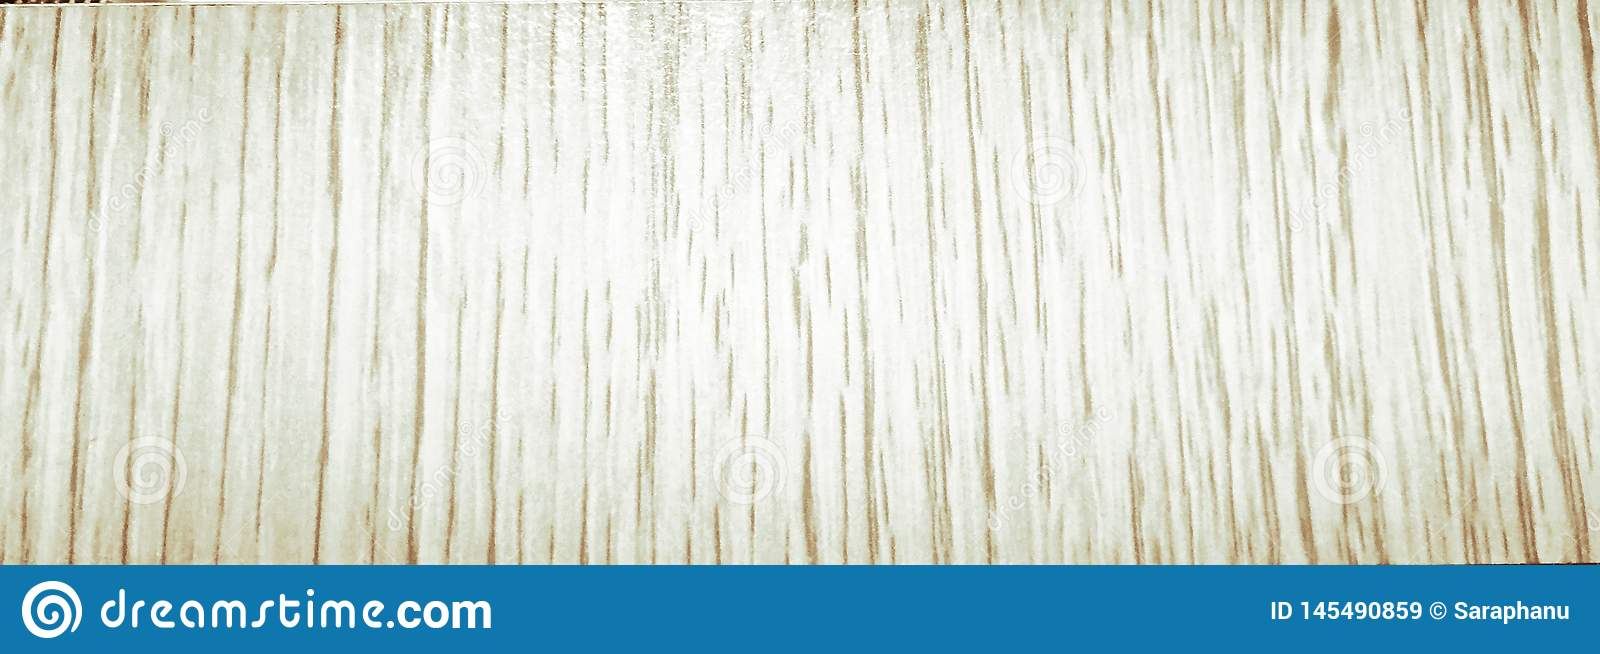 Light brown wood texture for background design